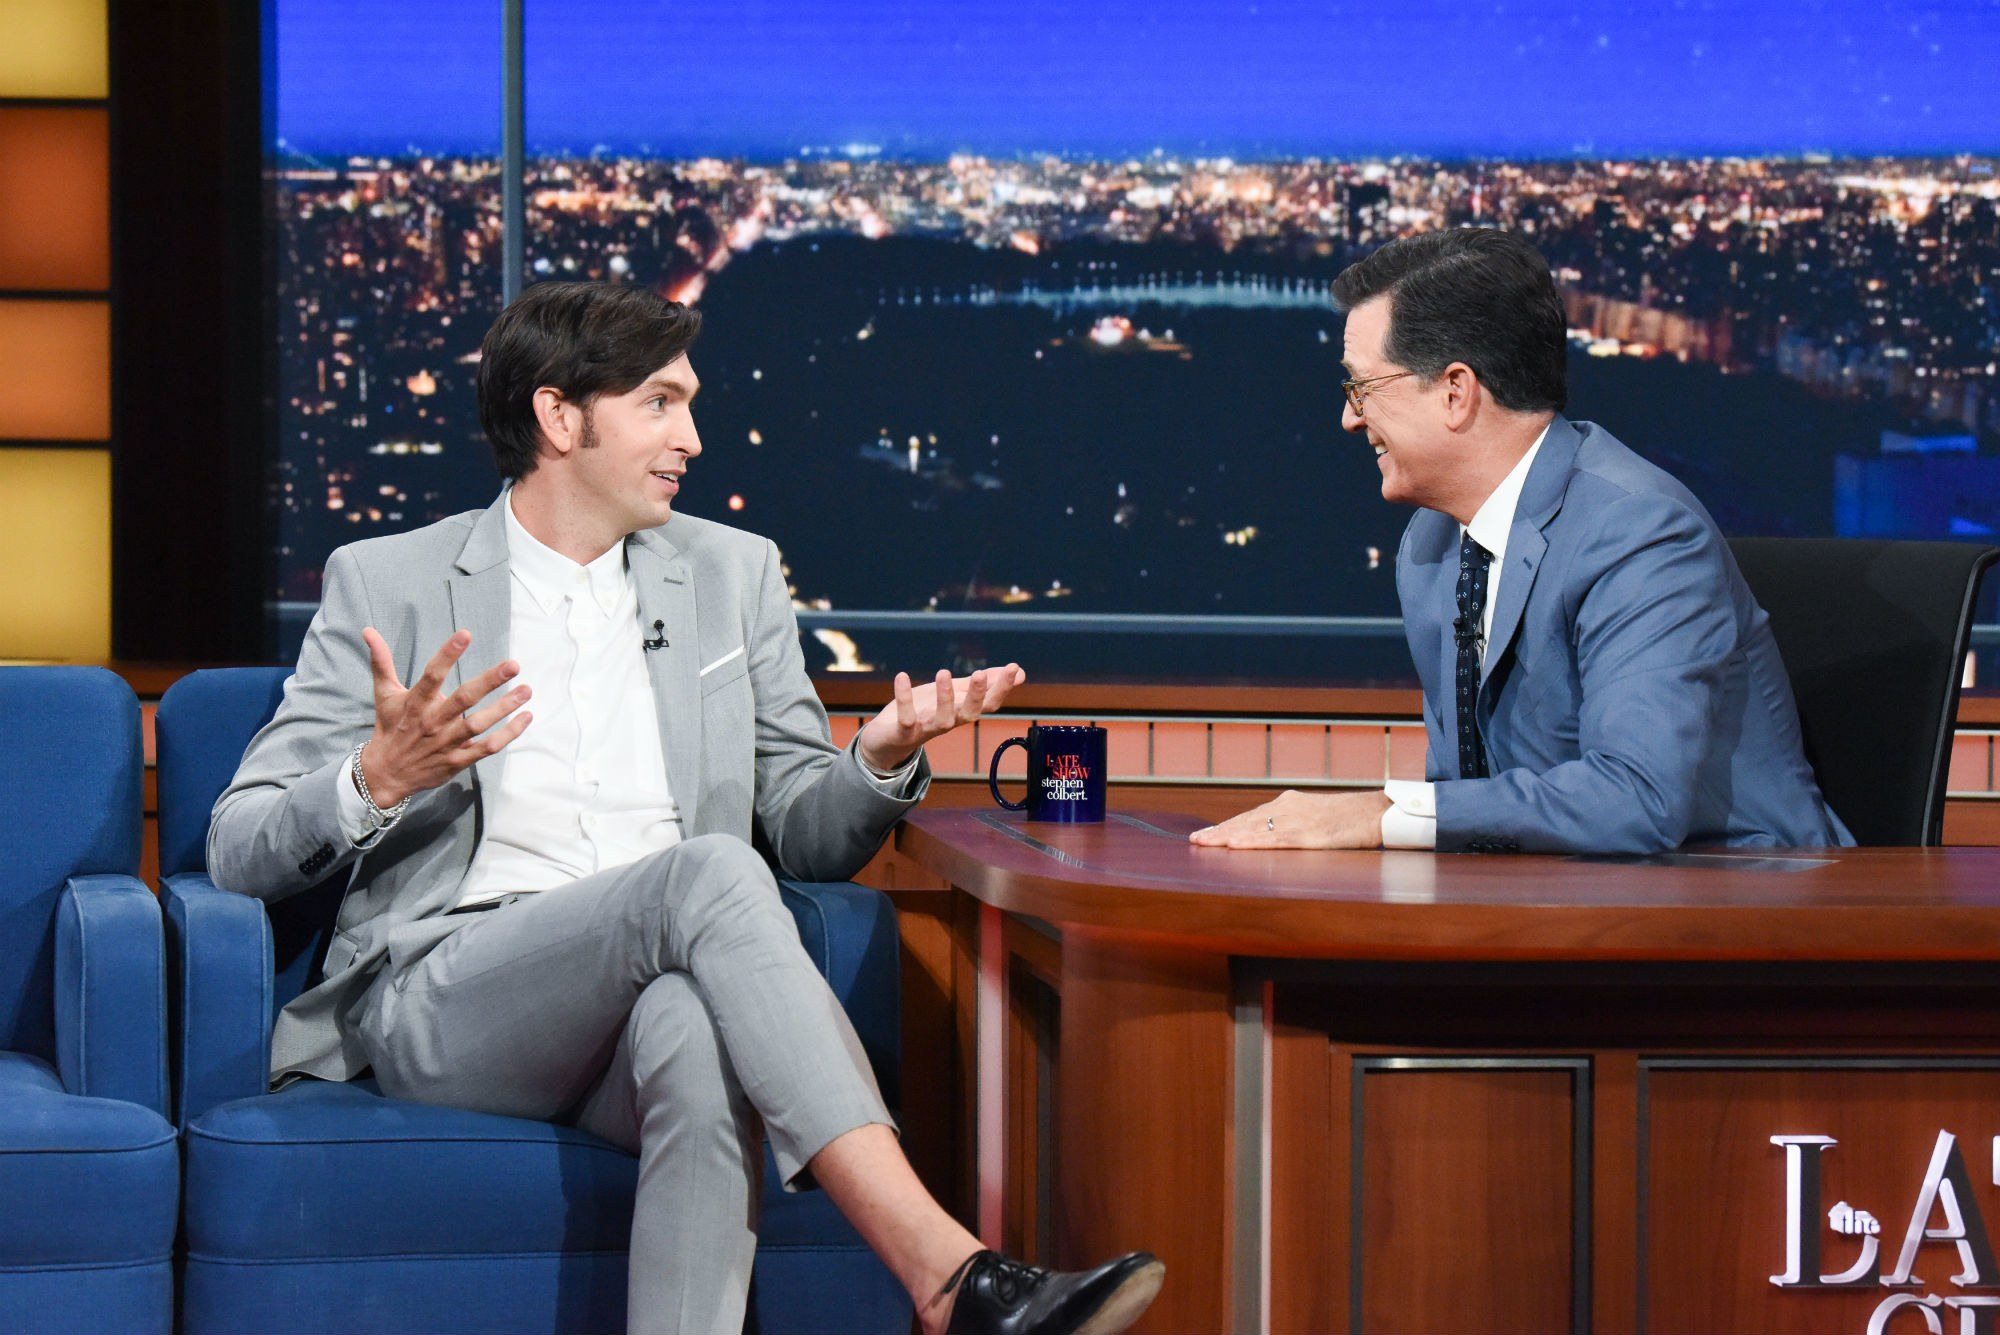 'Succession' Stars Nicholas Braun, Matthew Macfadyen Breaks Down on How To Make a Tomelette